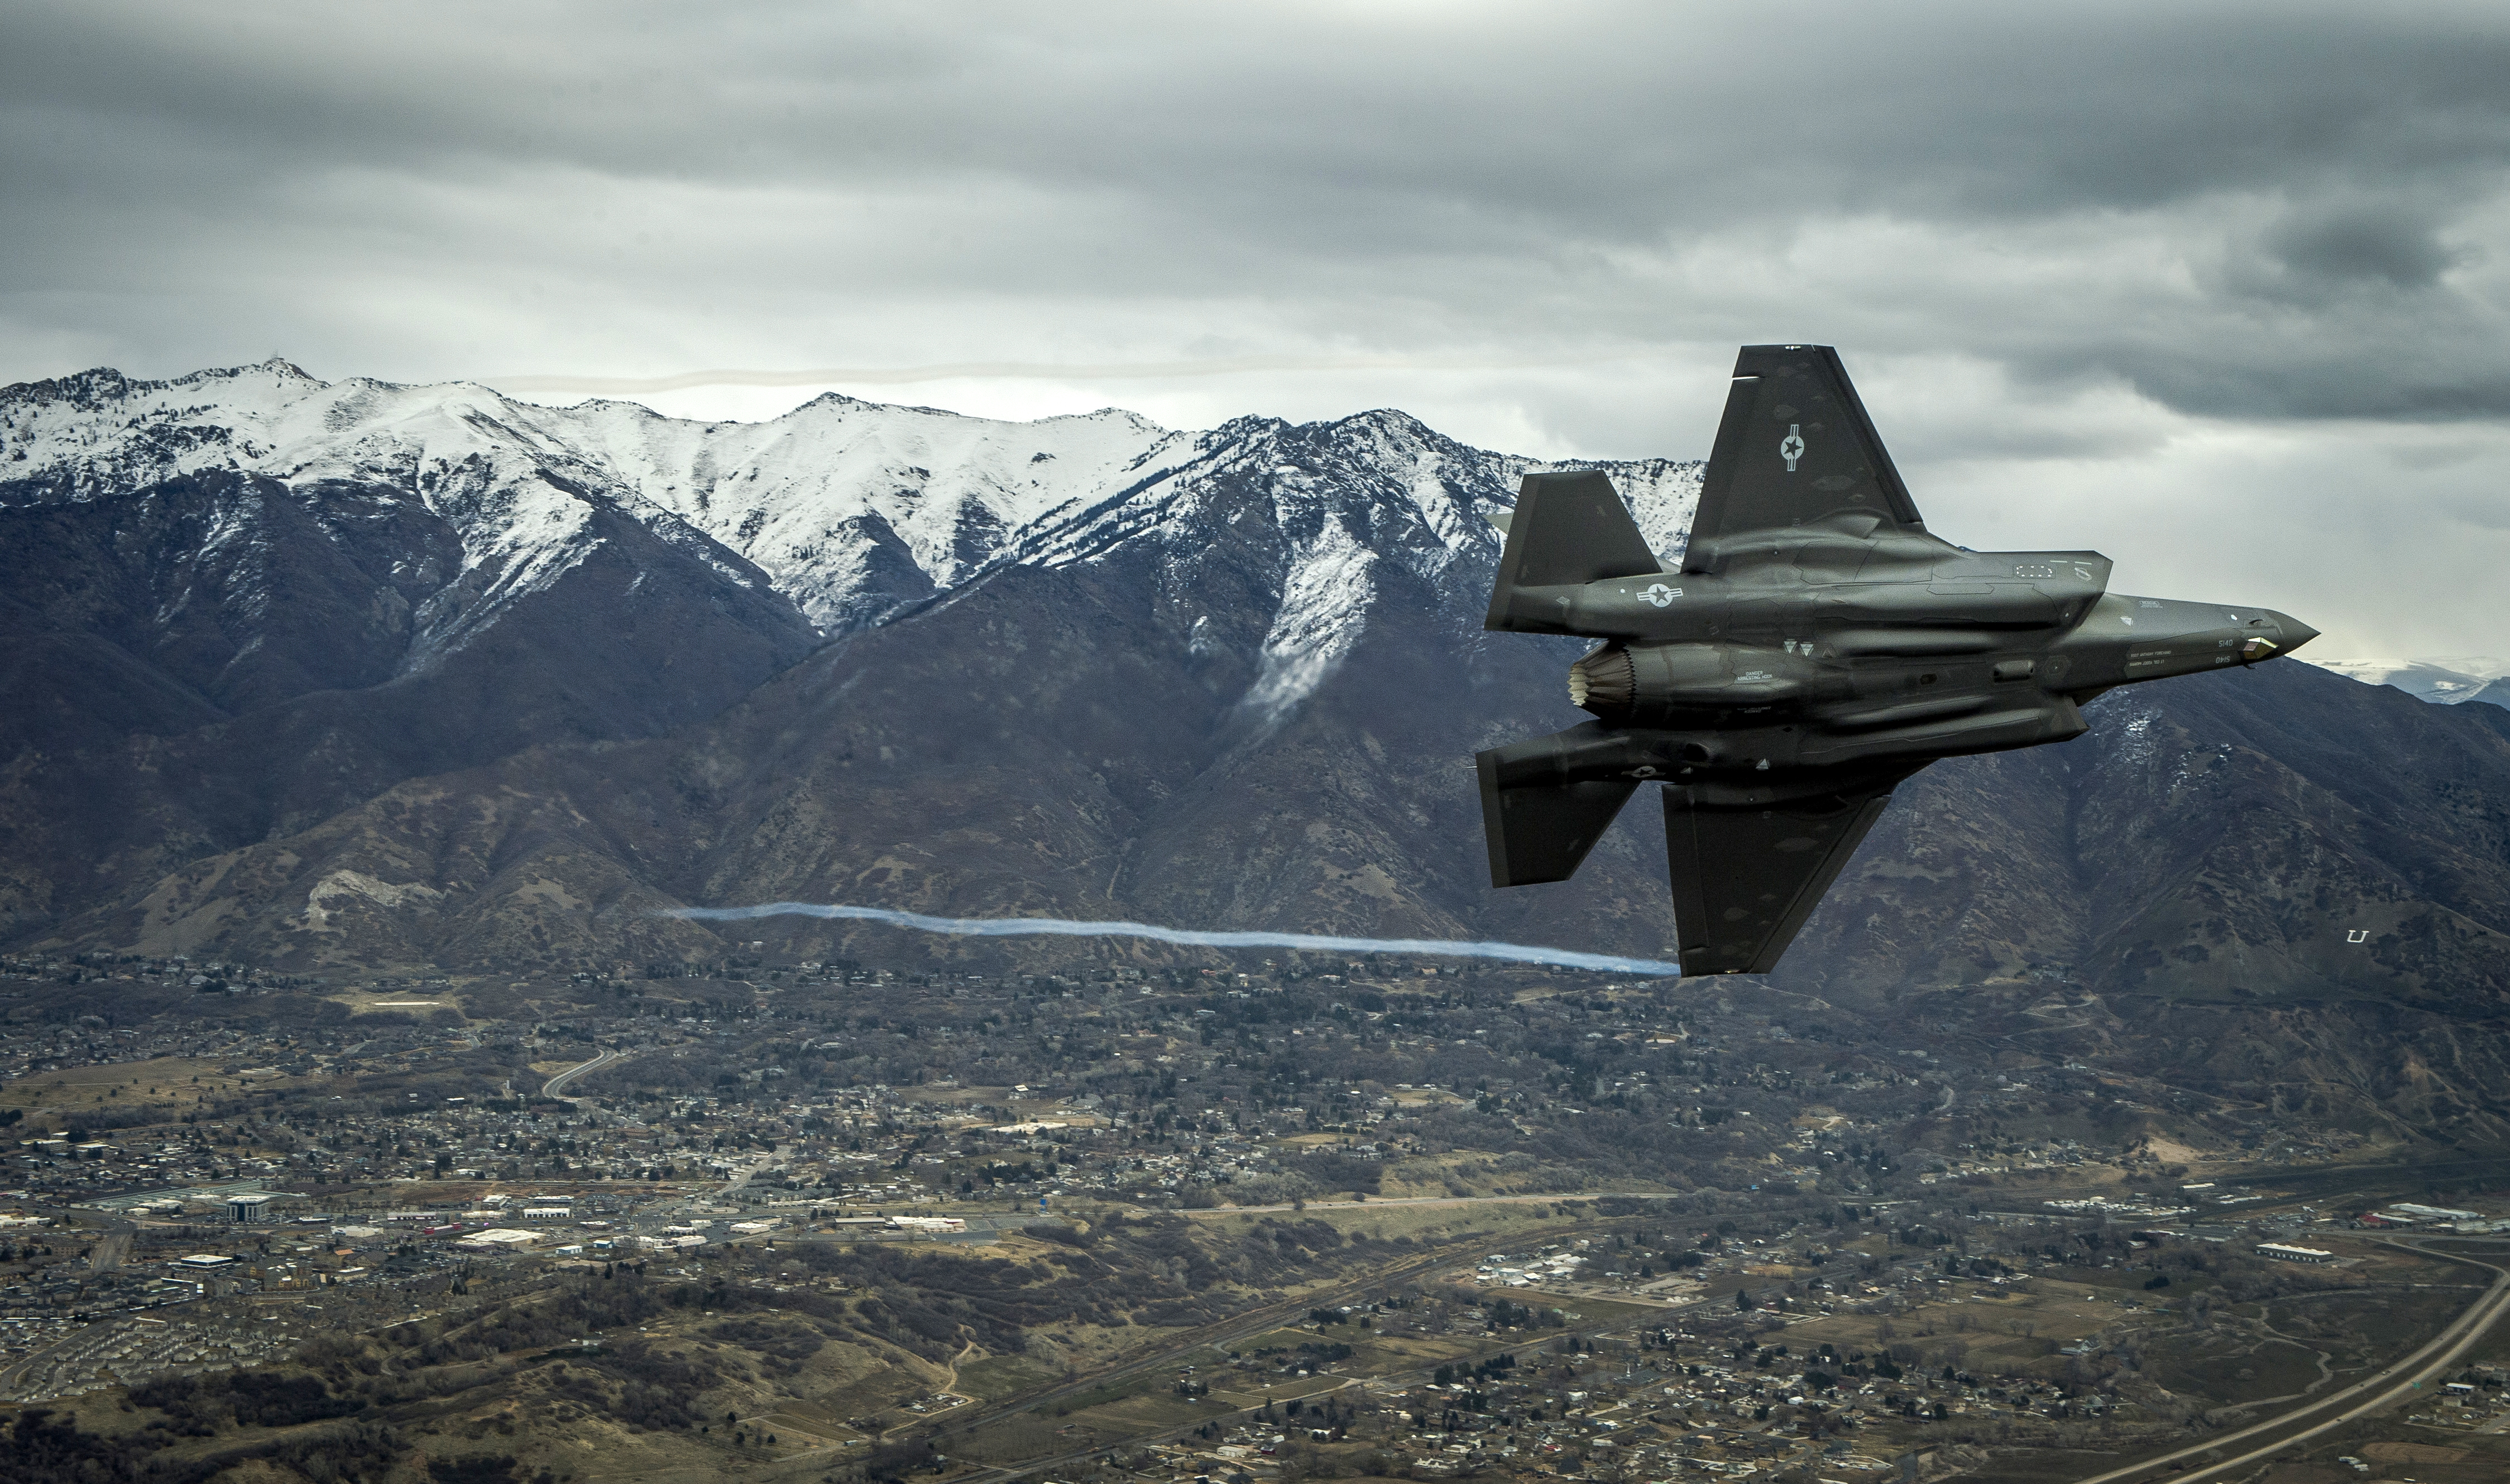 The United Arab Emirates is seeking to buy 50 F-35A fighter jets from the United States. (Staff Sgt. Andrew Lee/U.S. Air Force)